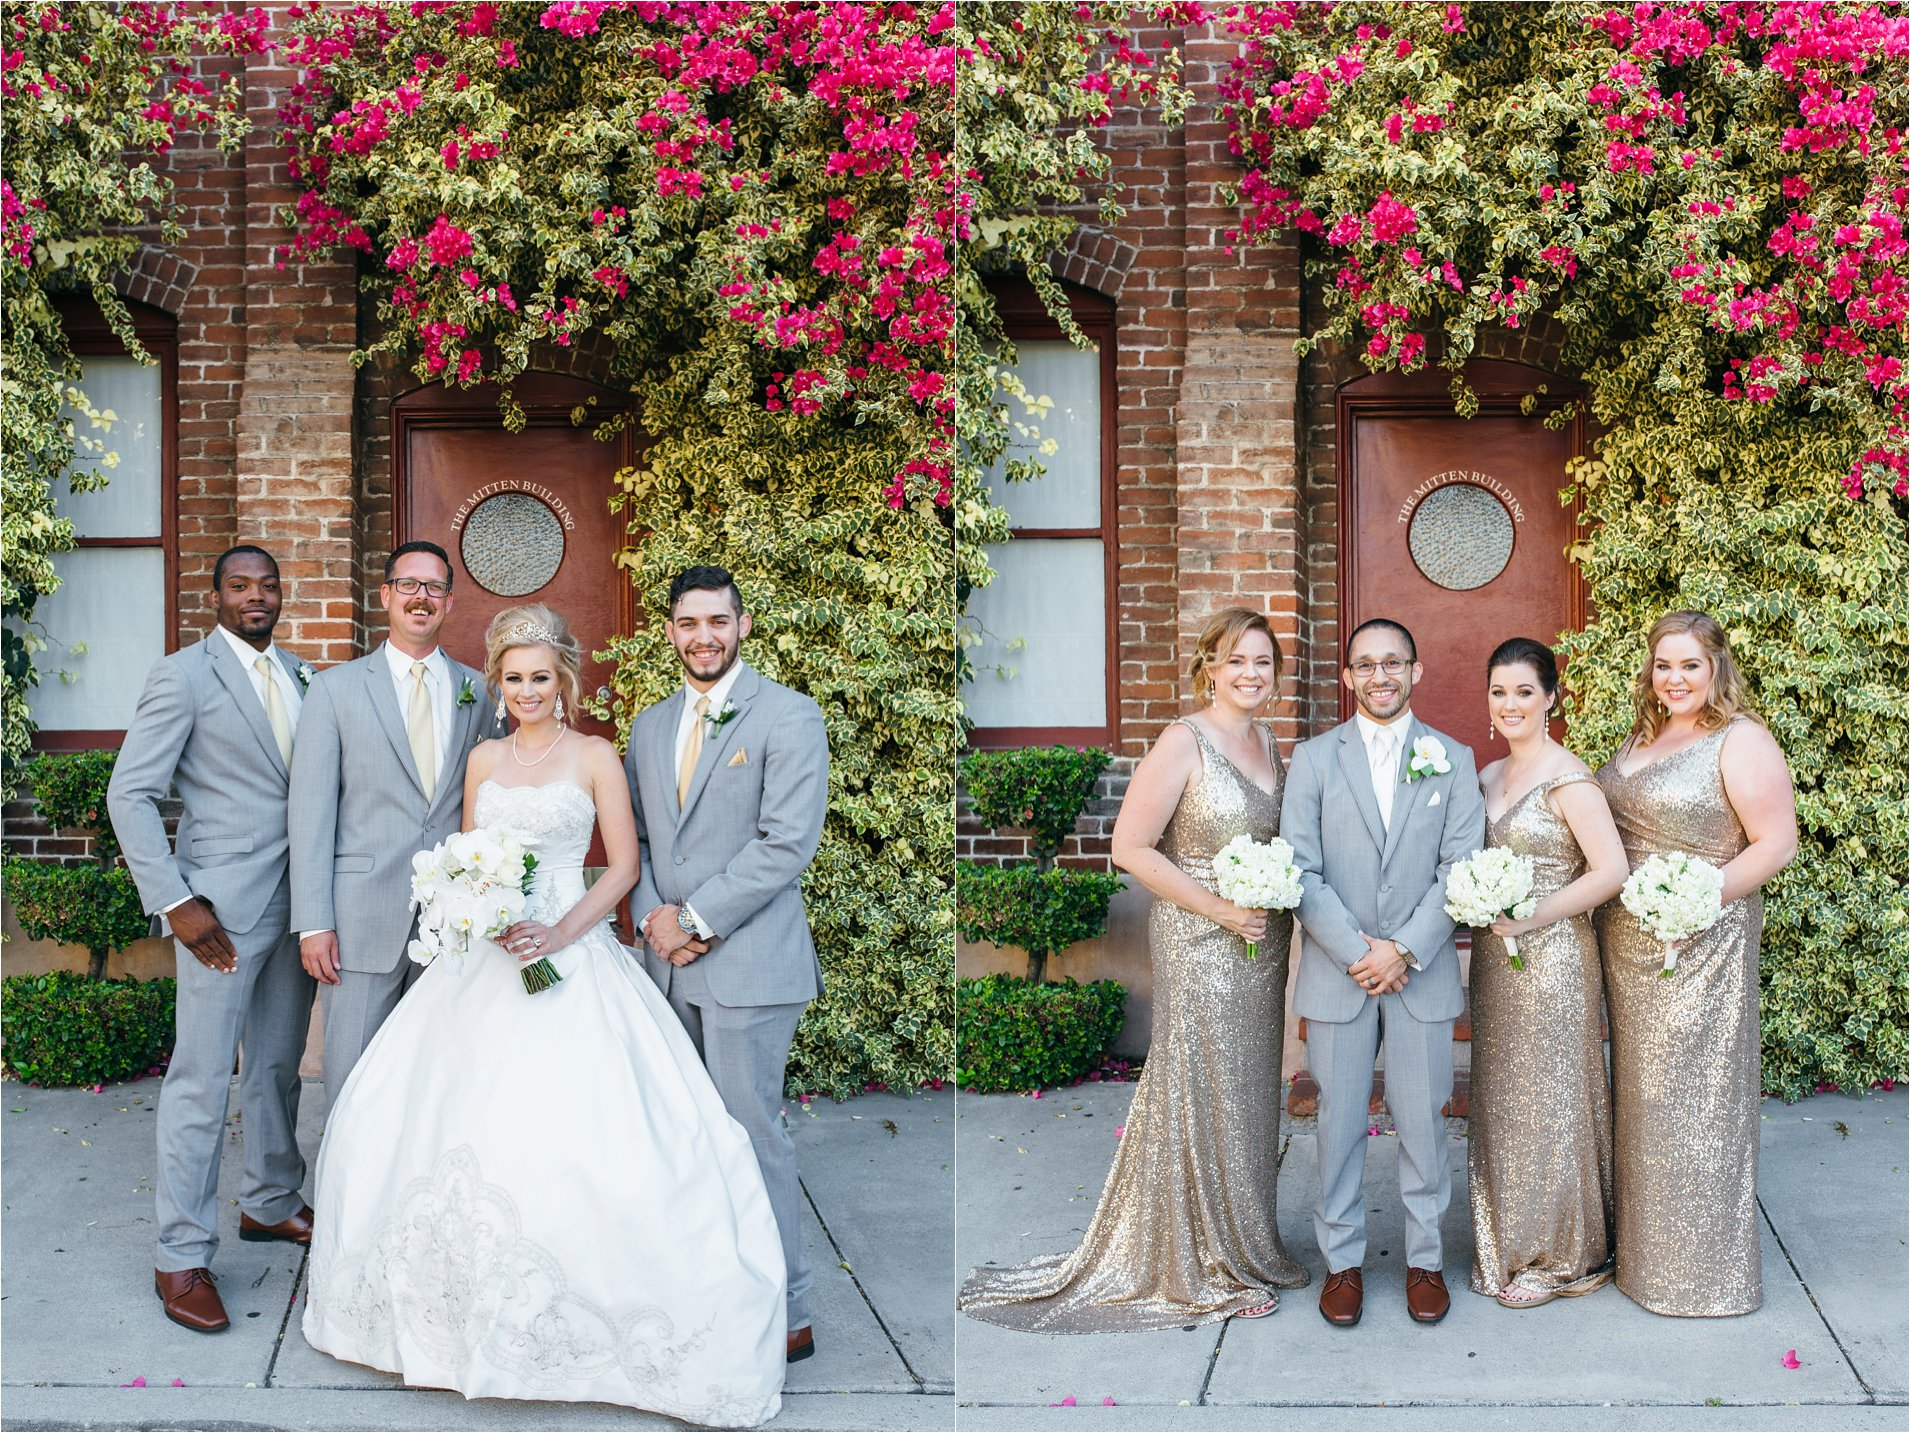 Bridal Party Photos - Southern California Wedding Photographer